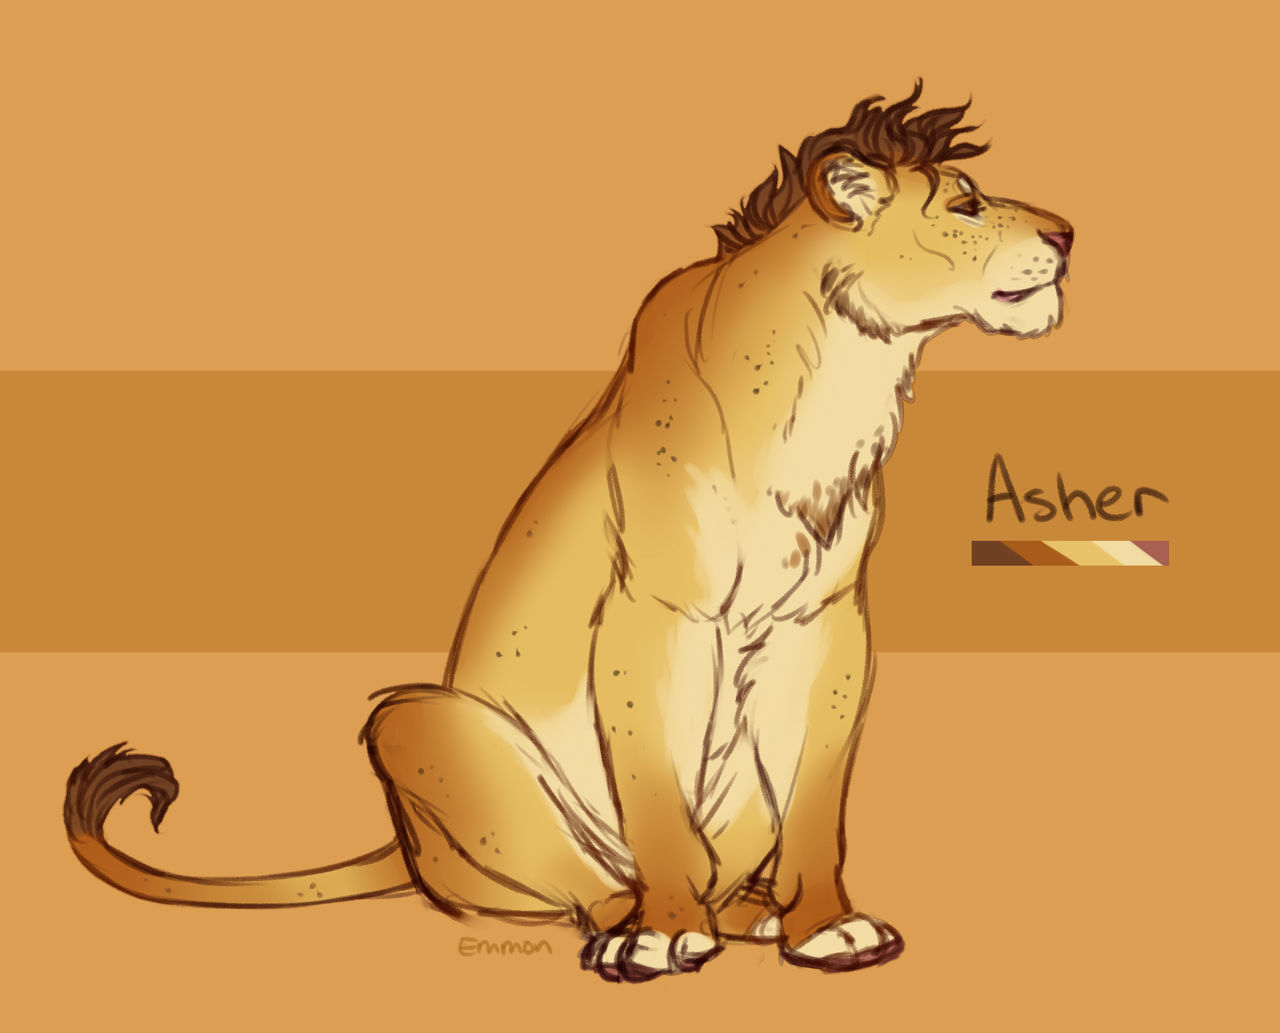 asher_by_emmonarts_dcw5vfl-fullview.jpg